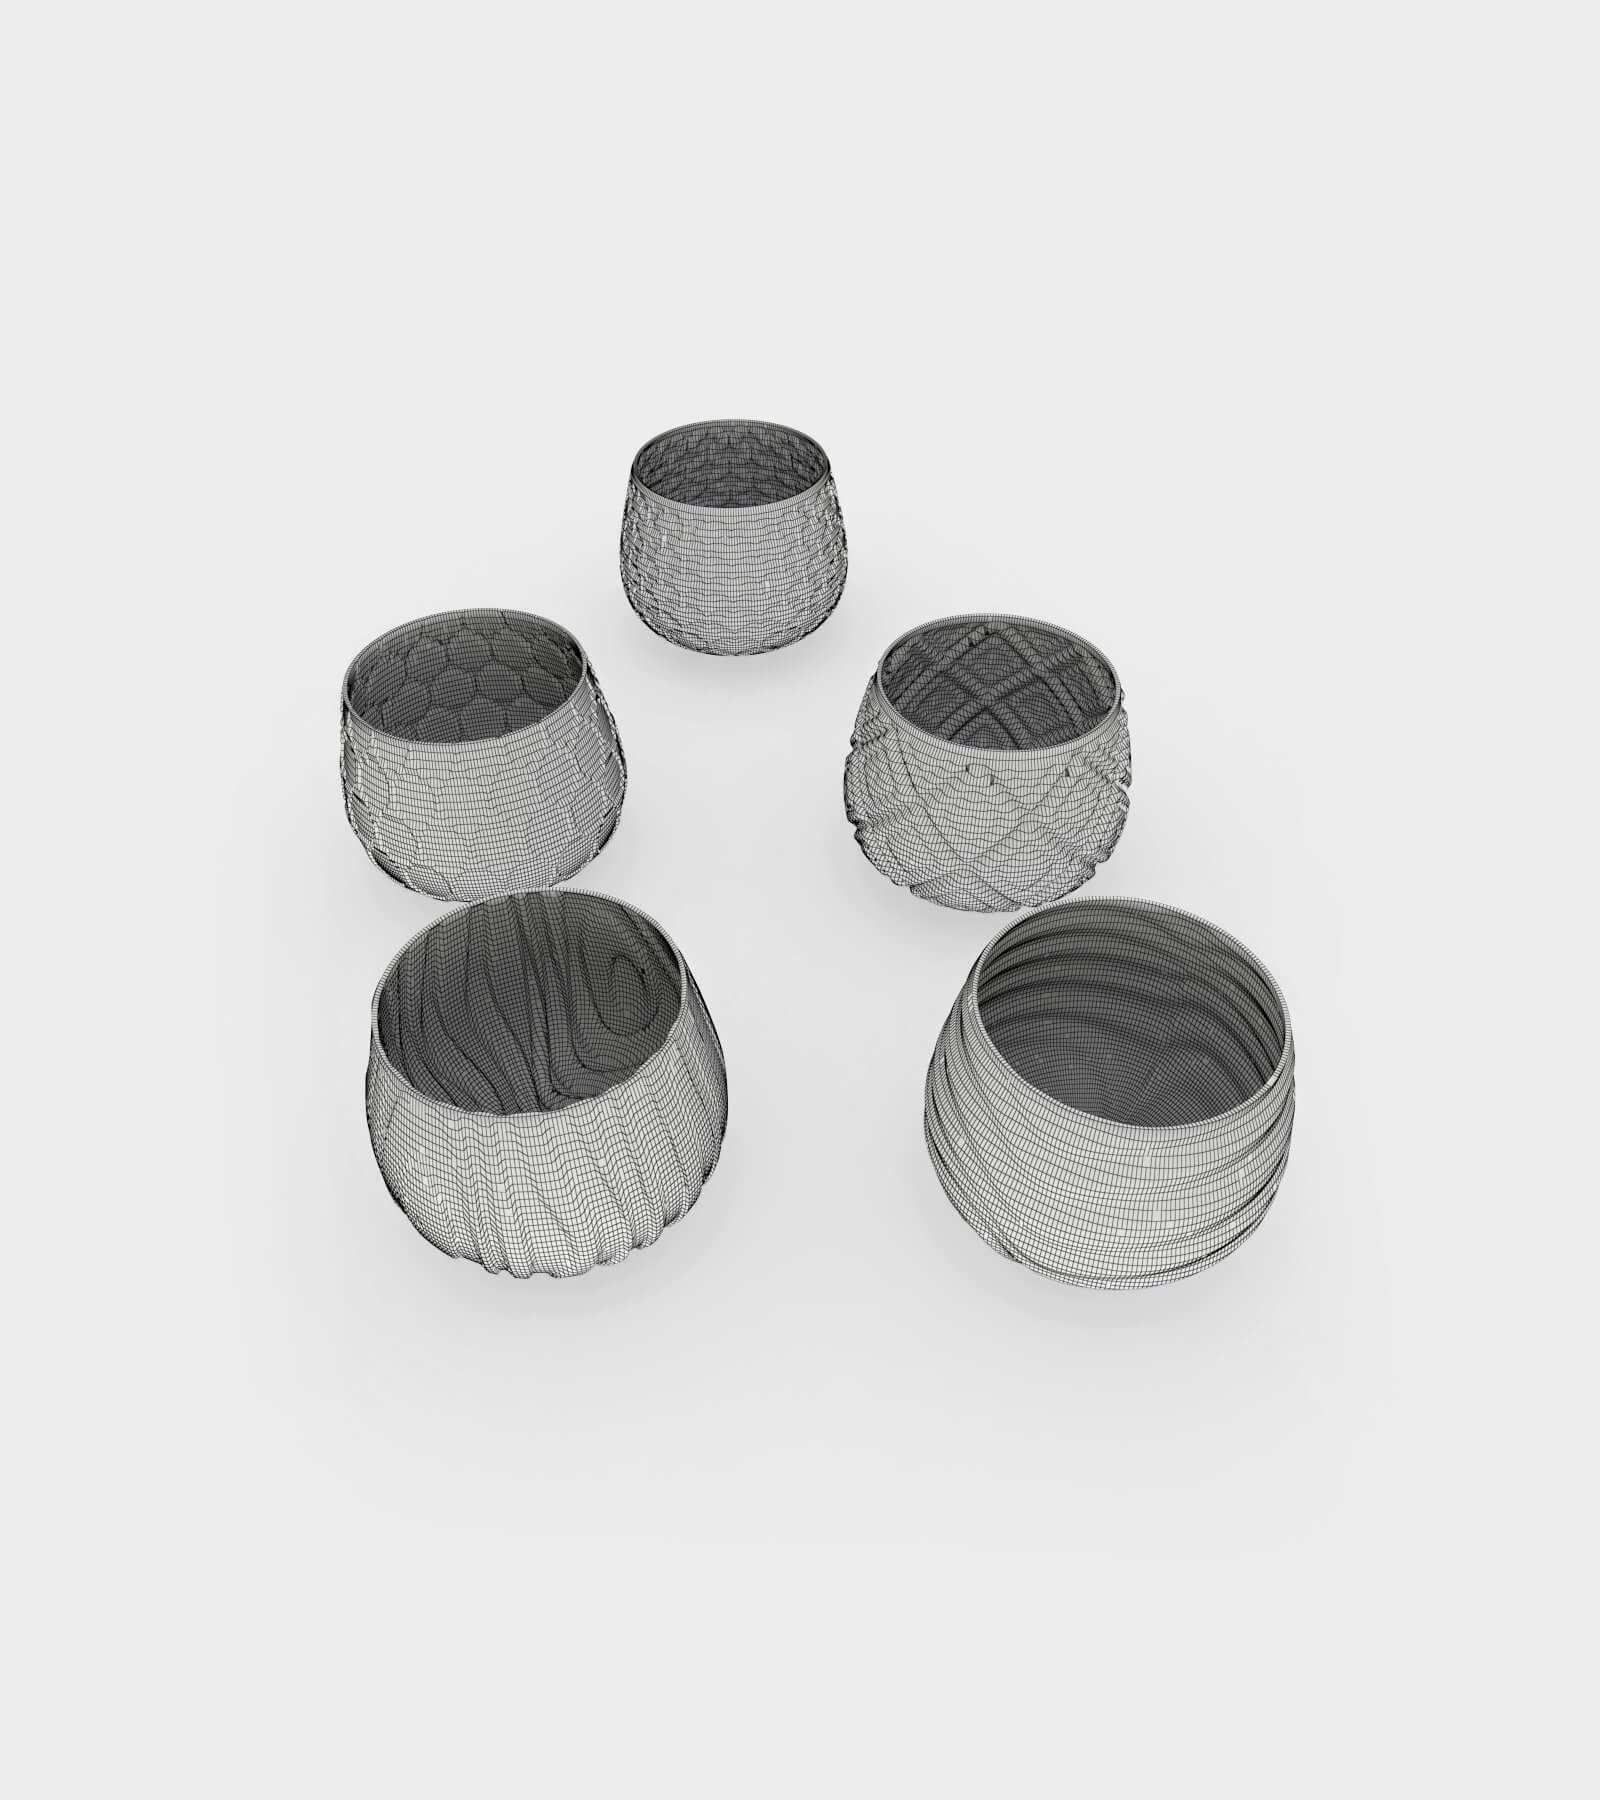 Different water and wine glasses with patterns-wire-2 3D Model